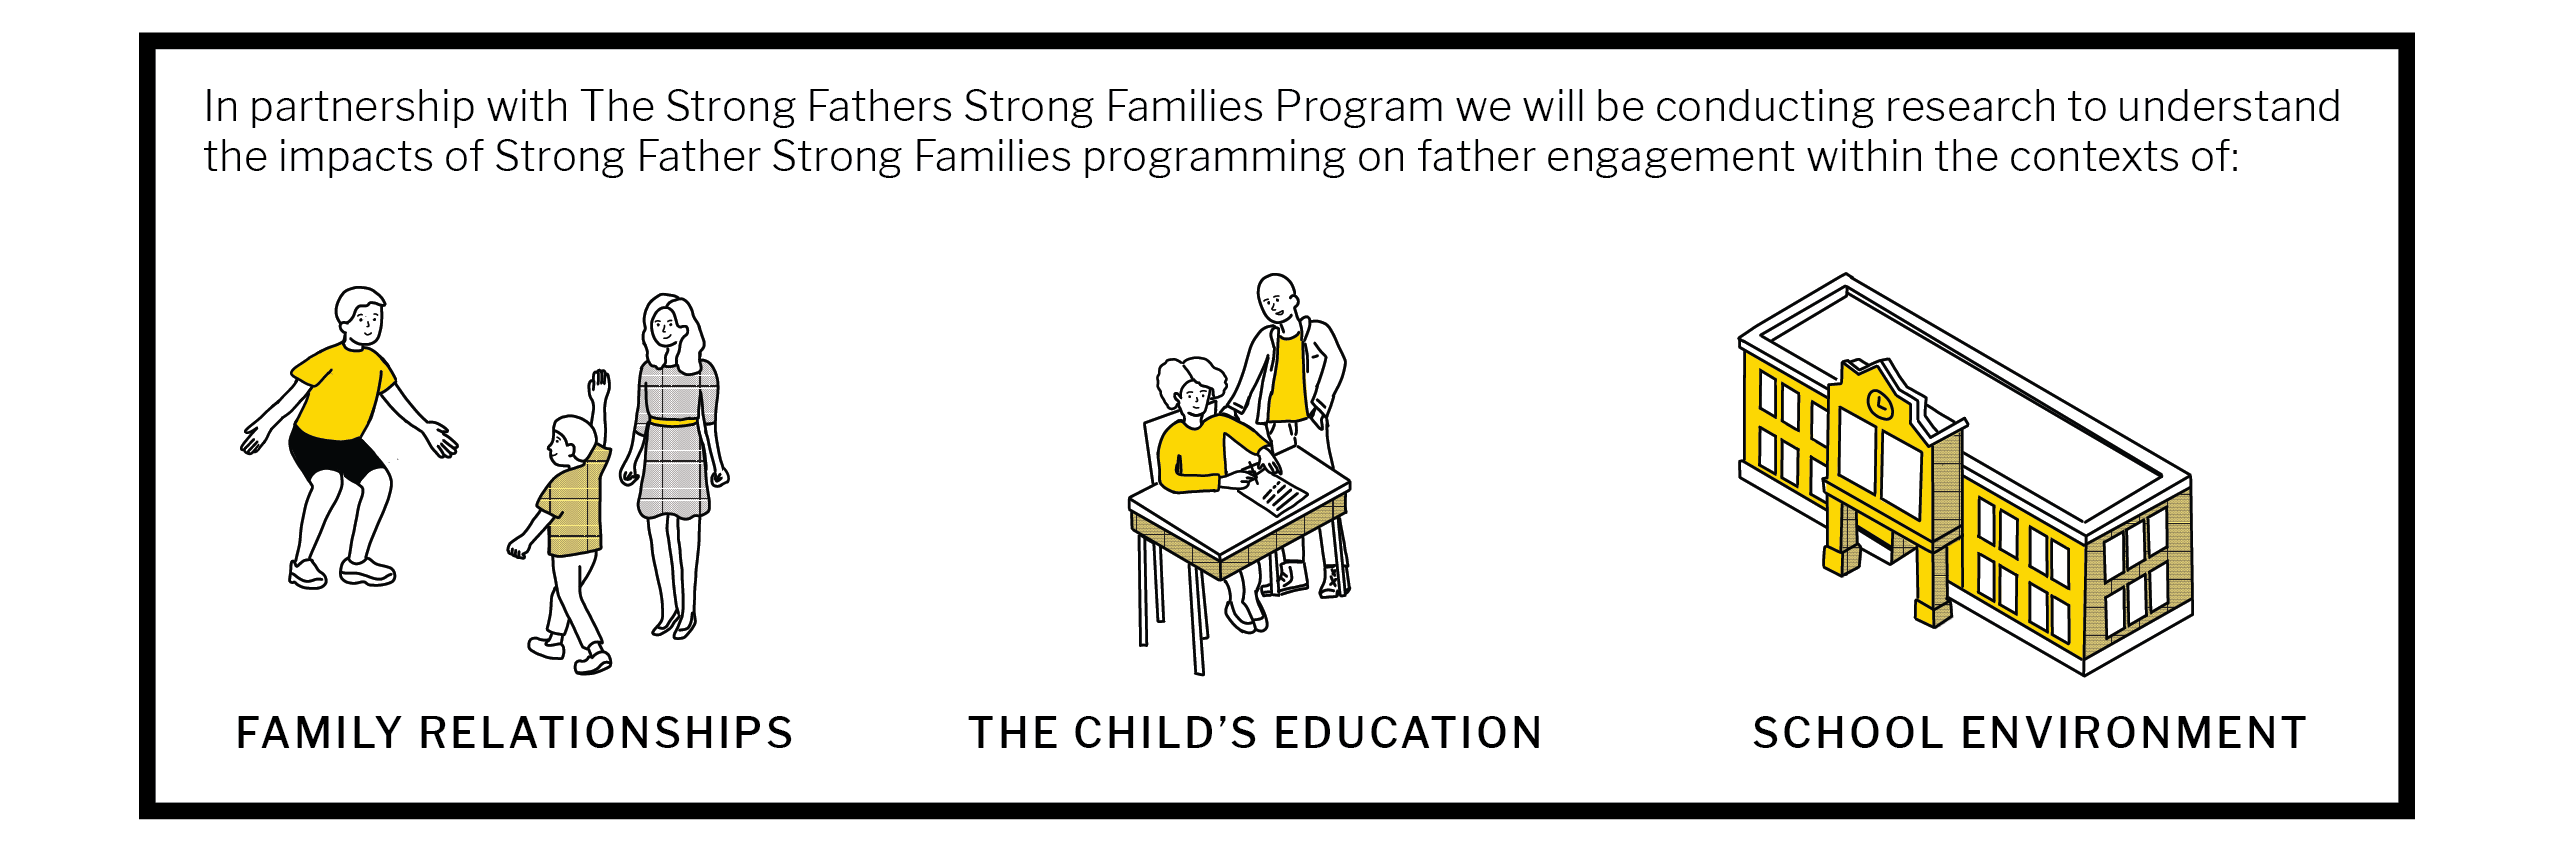 Strong Fathers Strong Families Research Project